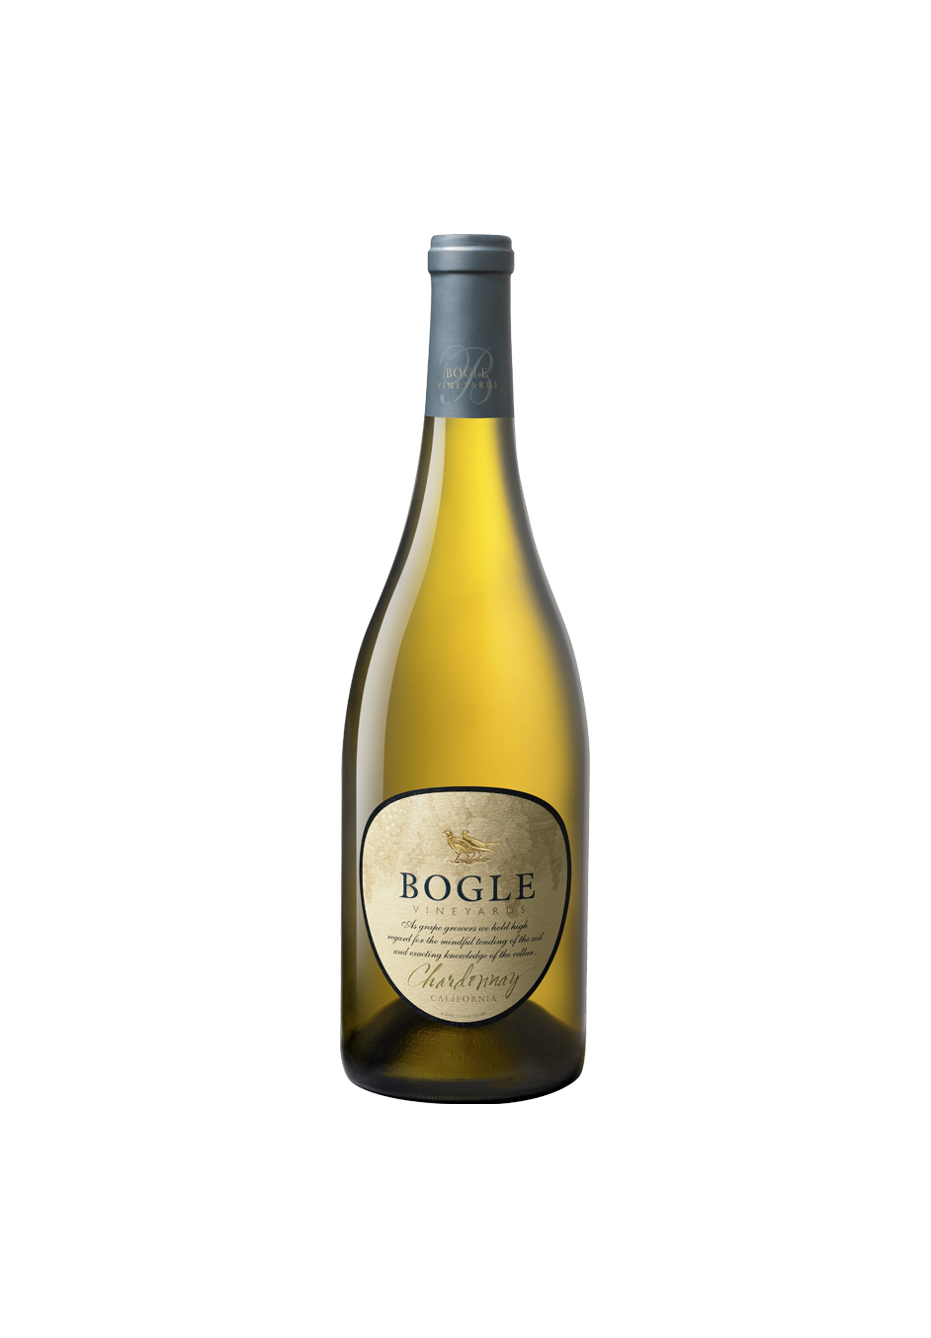 Bogle Vineyards Californian Chardonnay 2018